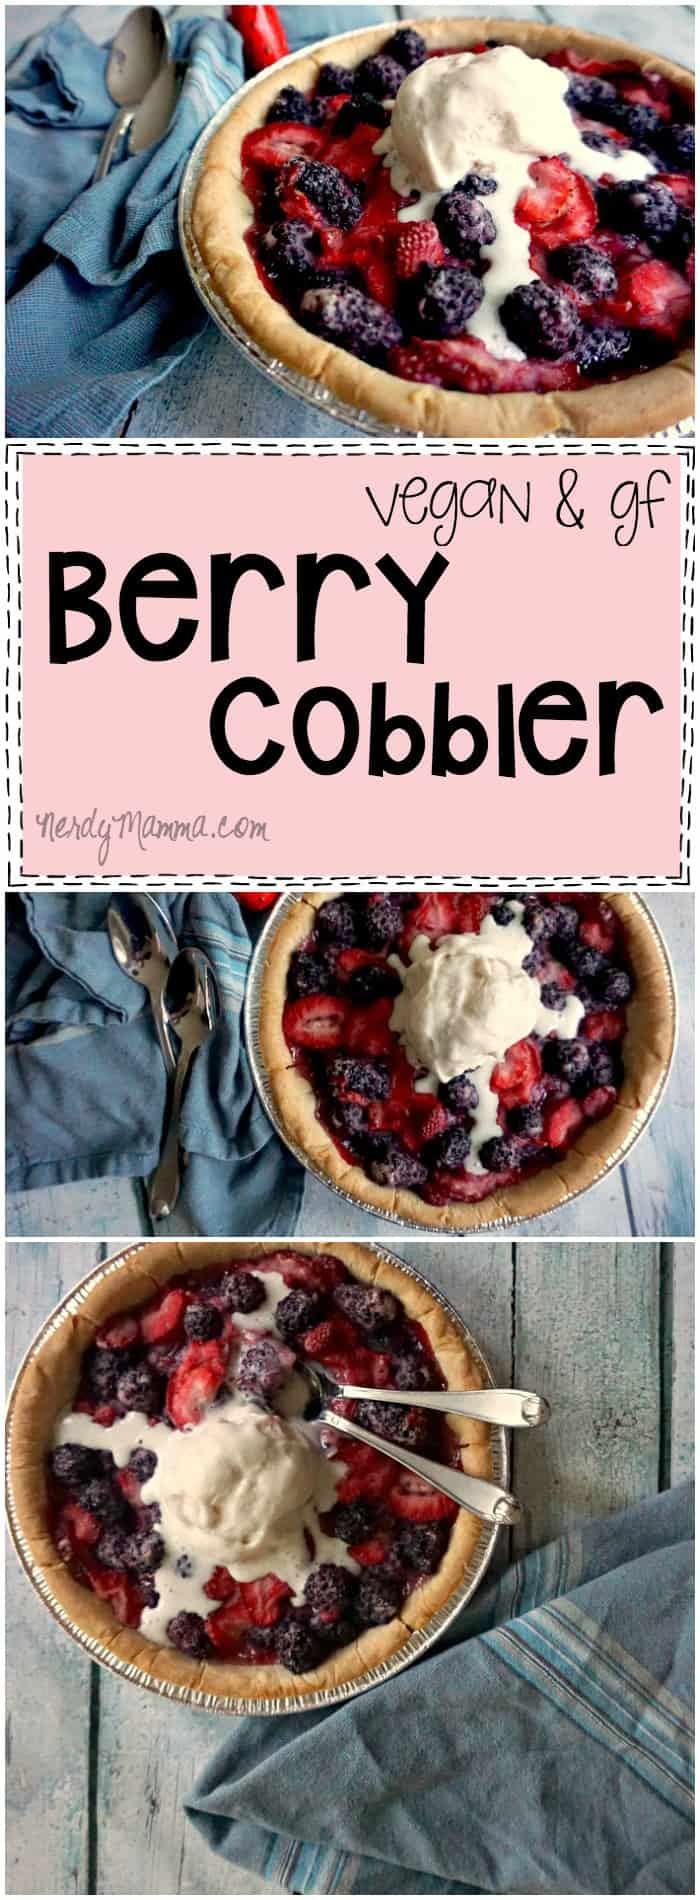 This recipe for vegan and gluten-free berry cobbler is SO EASY. I love it and can't wait to try it at my annual summer BBQ!